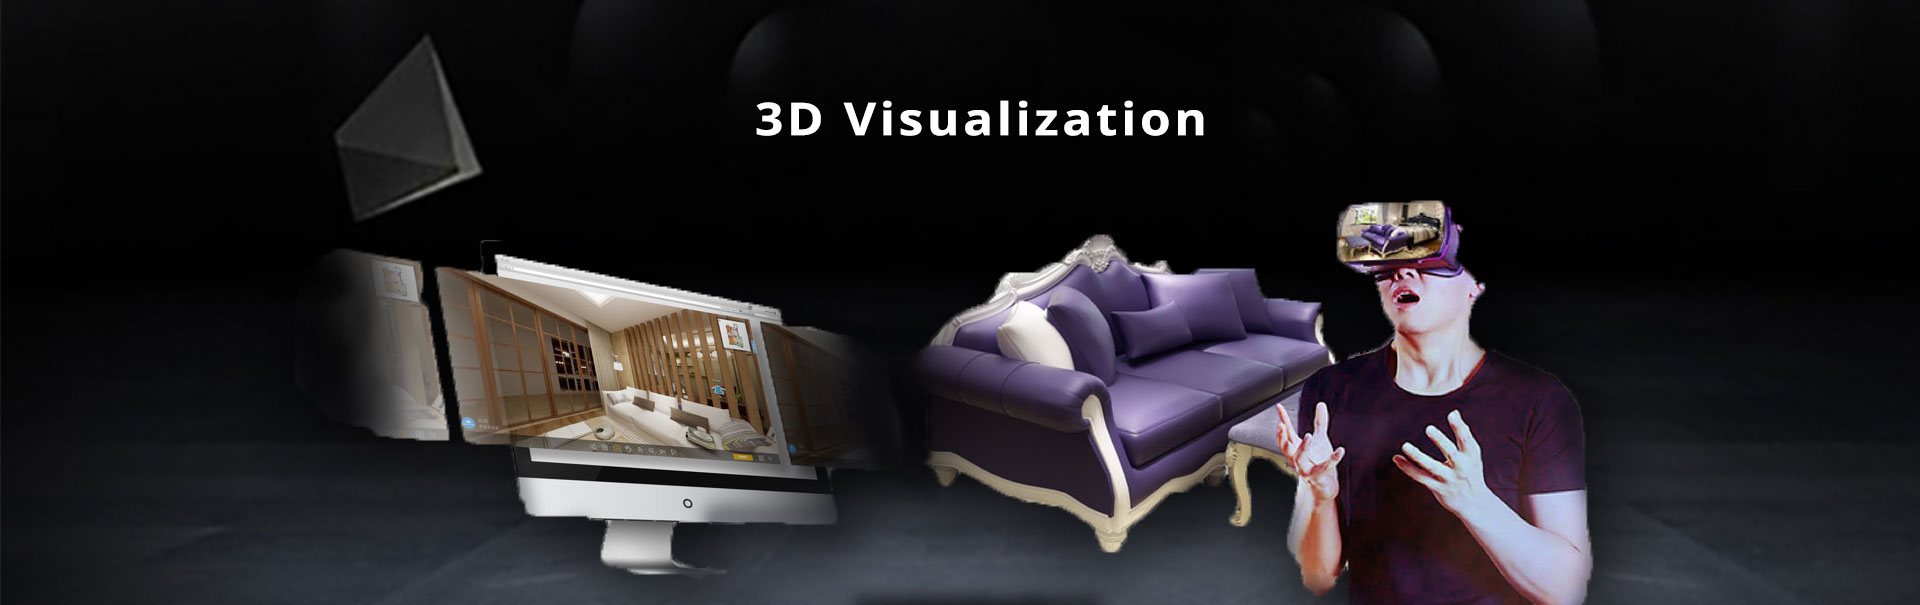 3D Visualization